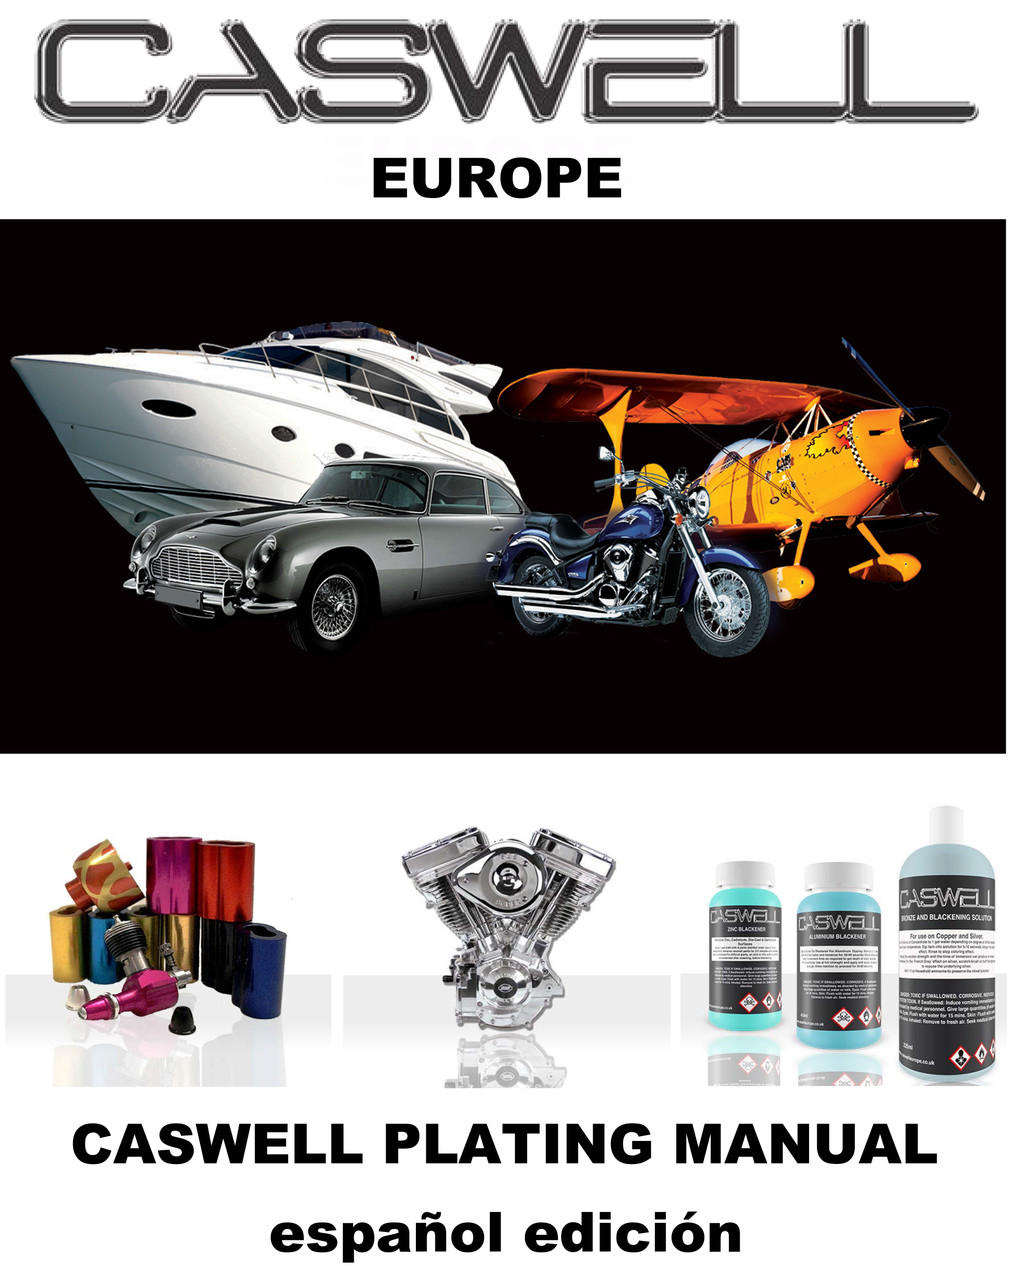 Caswell Plating Manual (Spanish Edition) - Caswell Europe